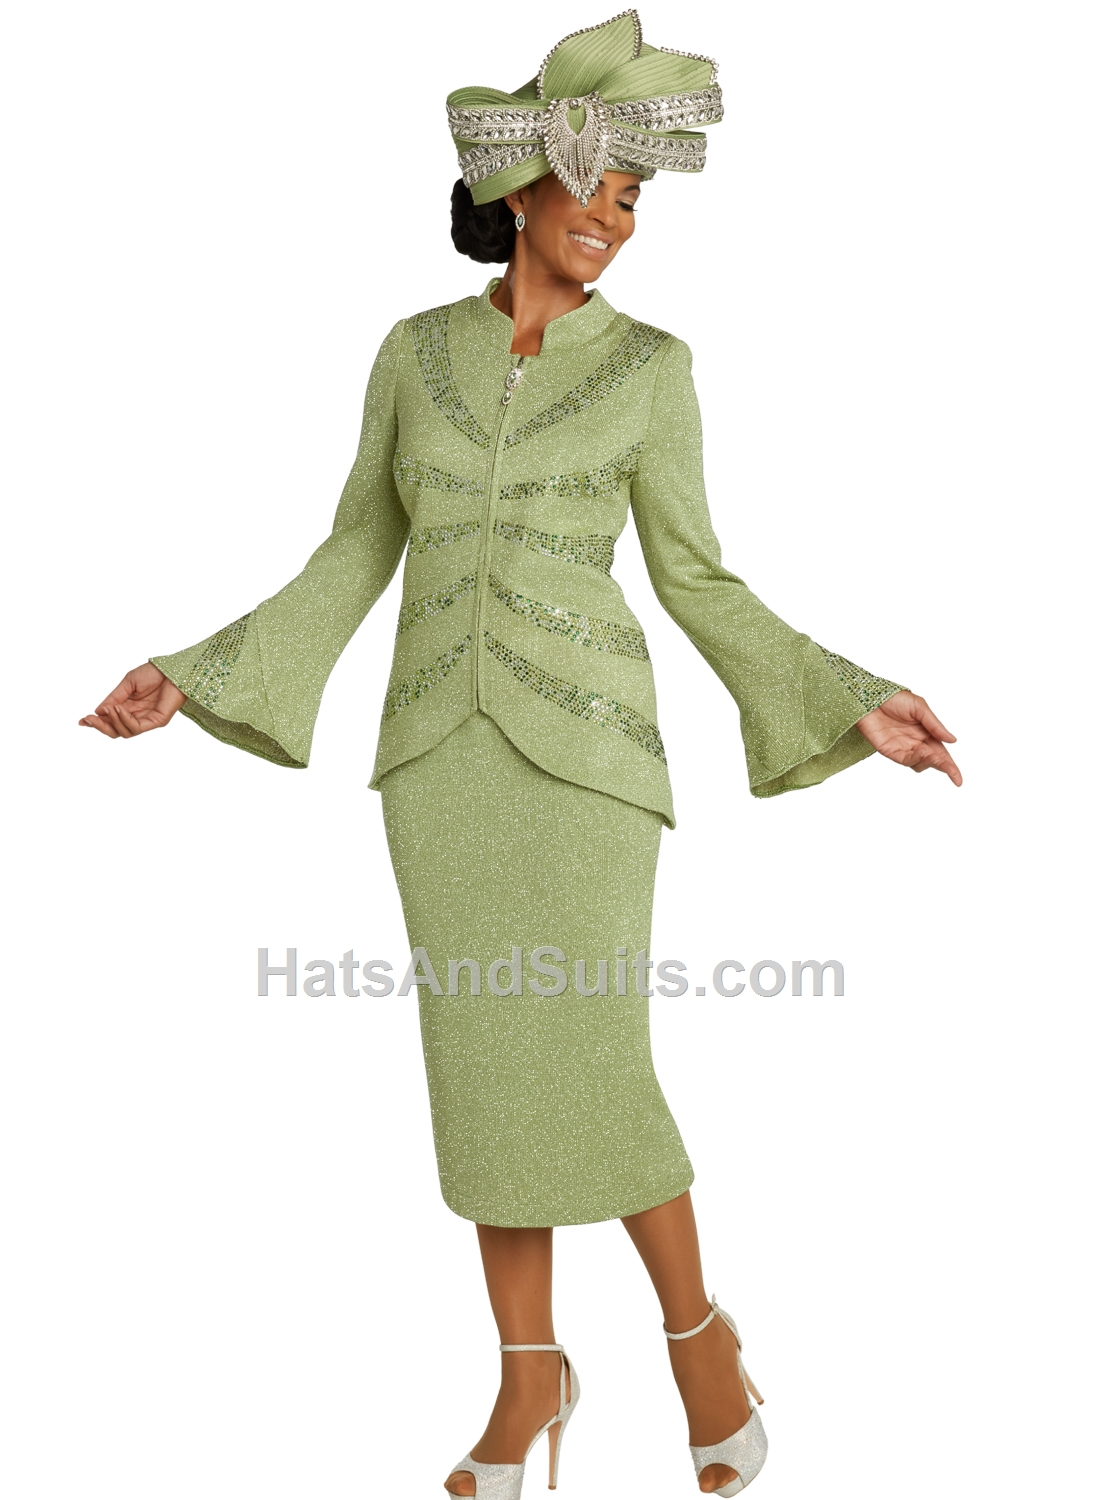 13296 Donna Vinci KNITS Women Suit, 2 Pc. Jacket & Skirt Set. SP20